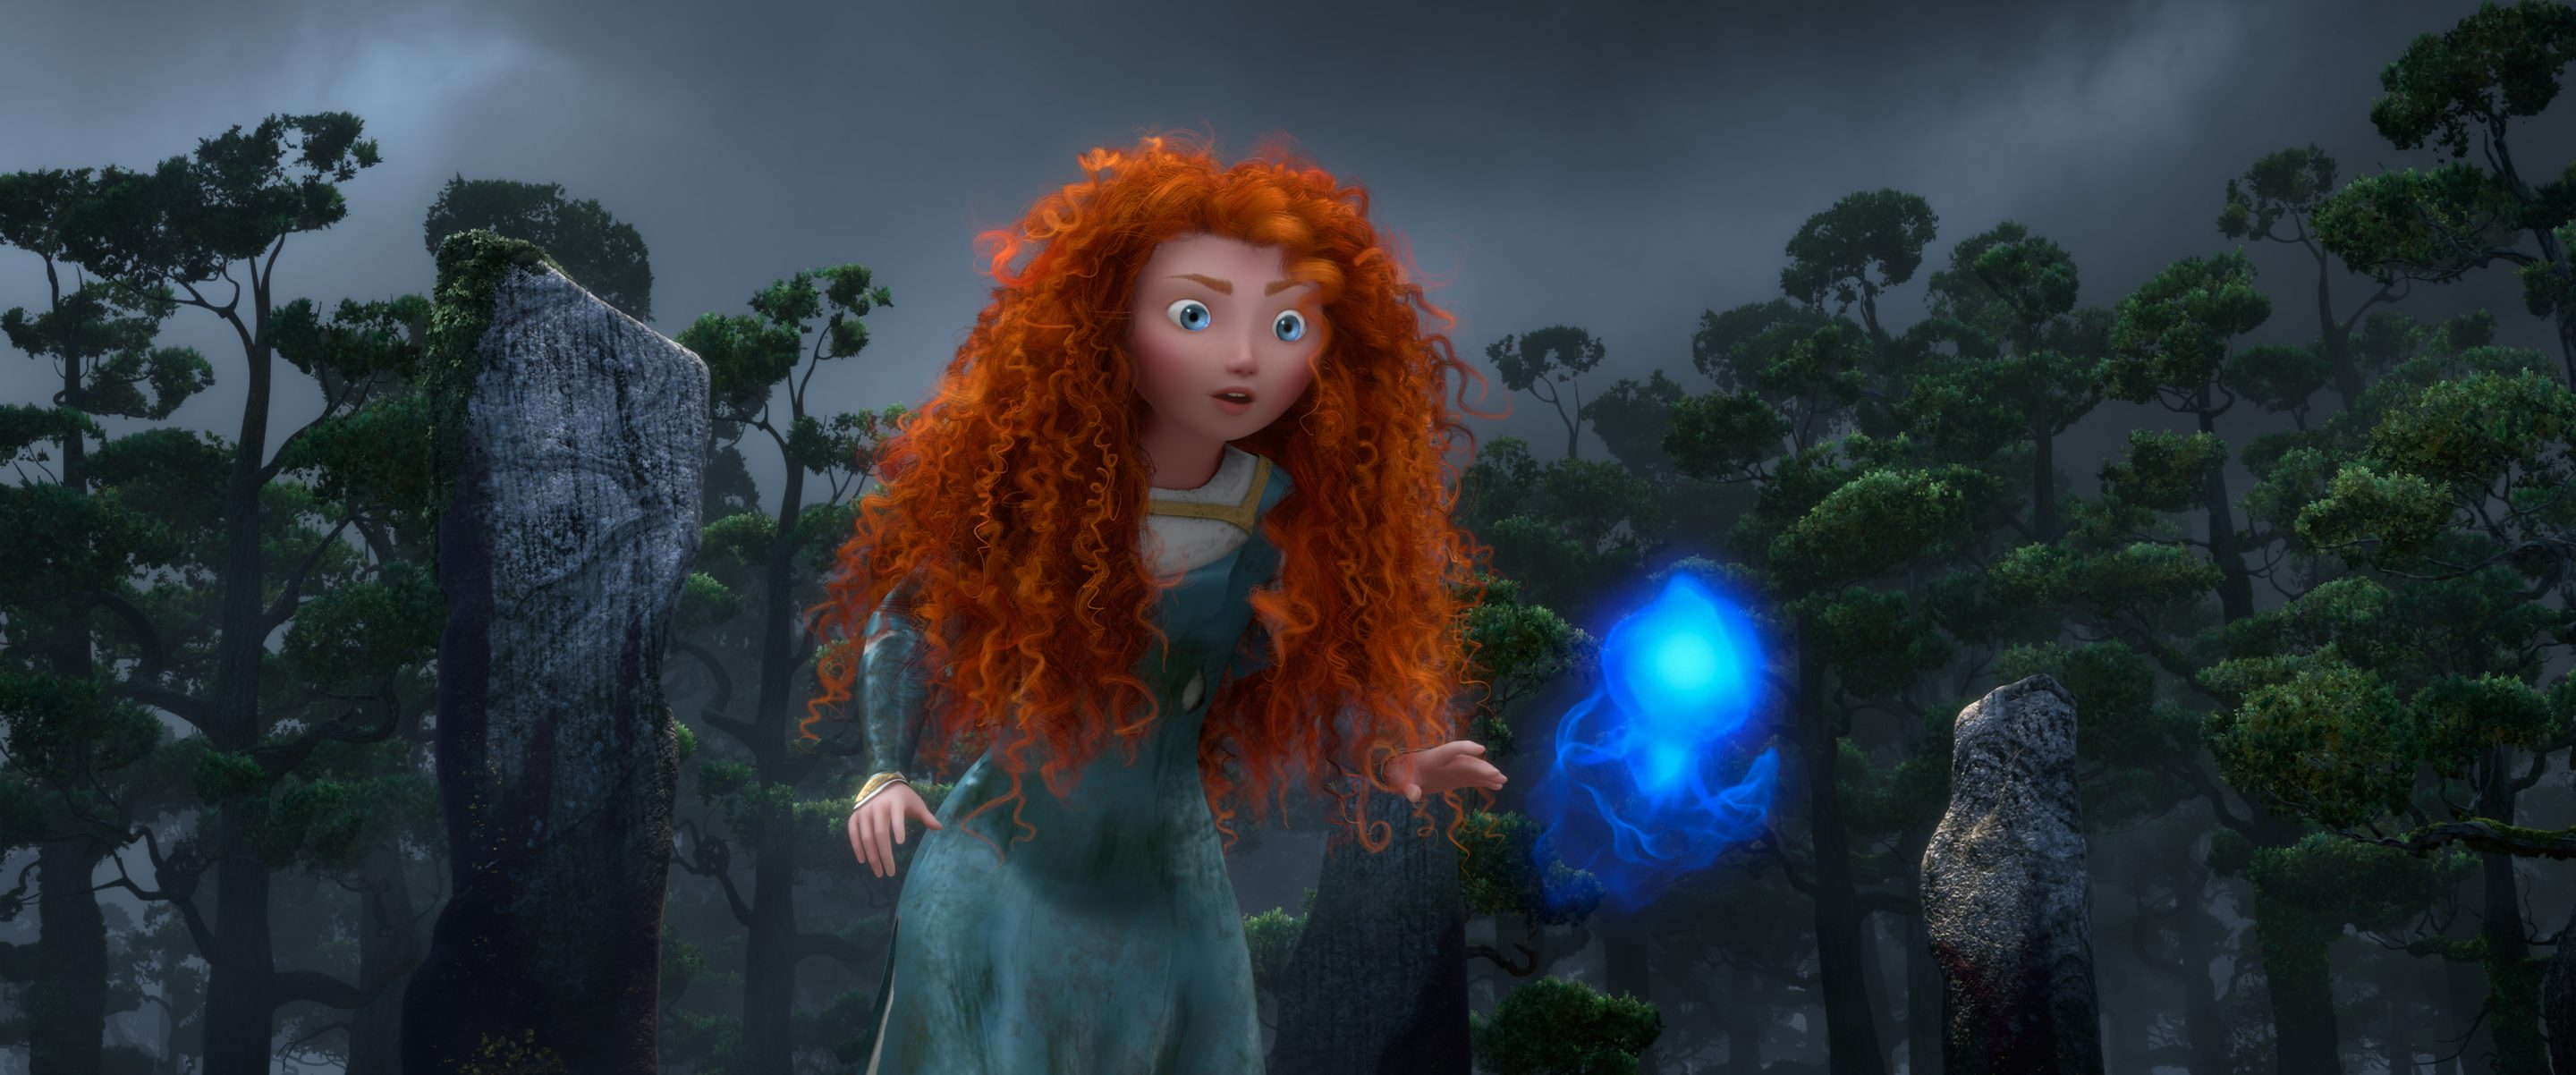 Spoiler-Free REVIEW of Disney-Pixar's #Brave-A Role Model is Born